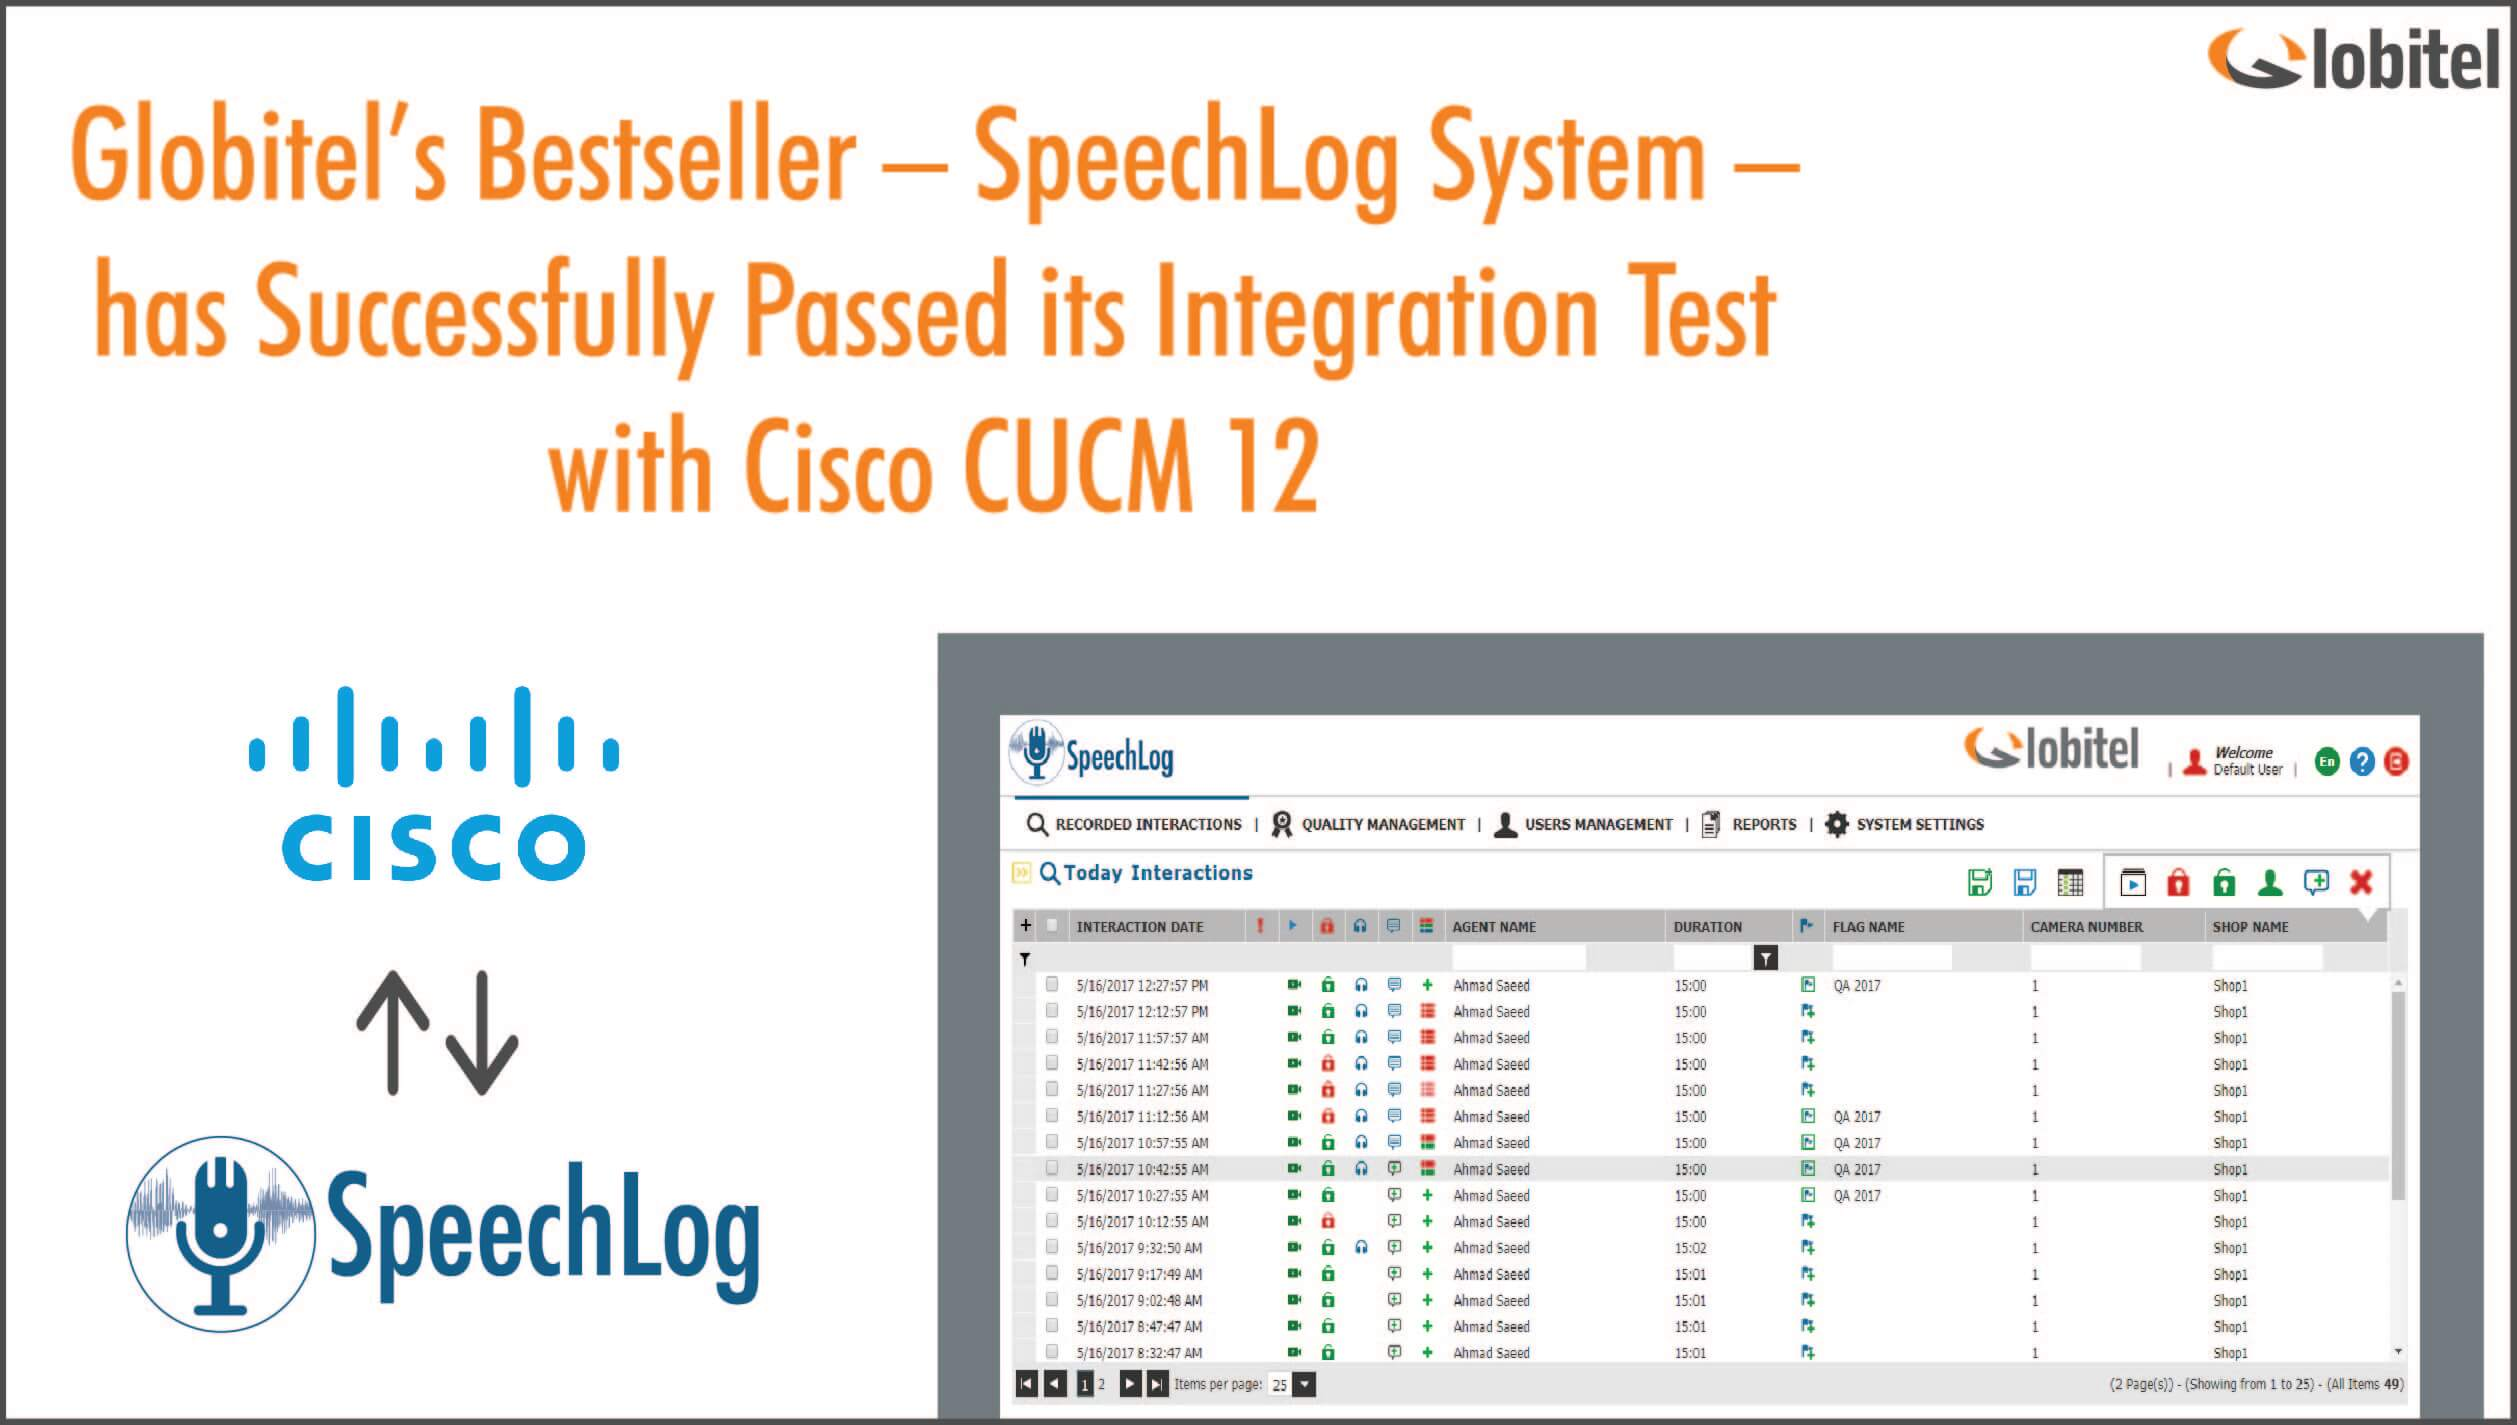 globitel speechlog integration with cisco cucm 12 (2)